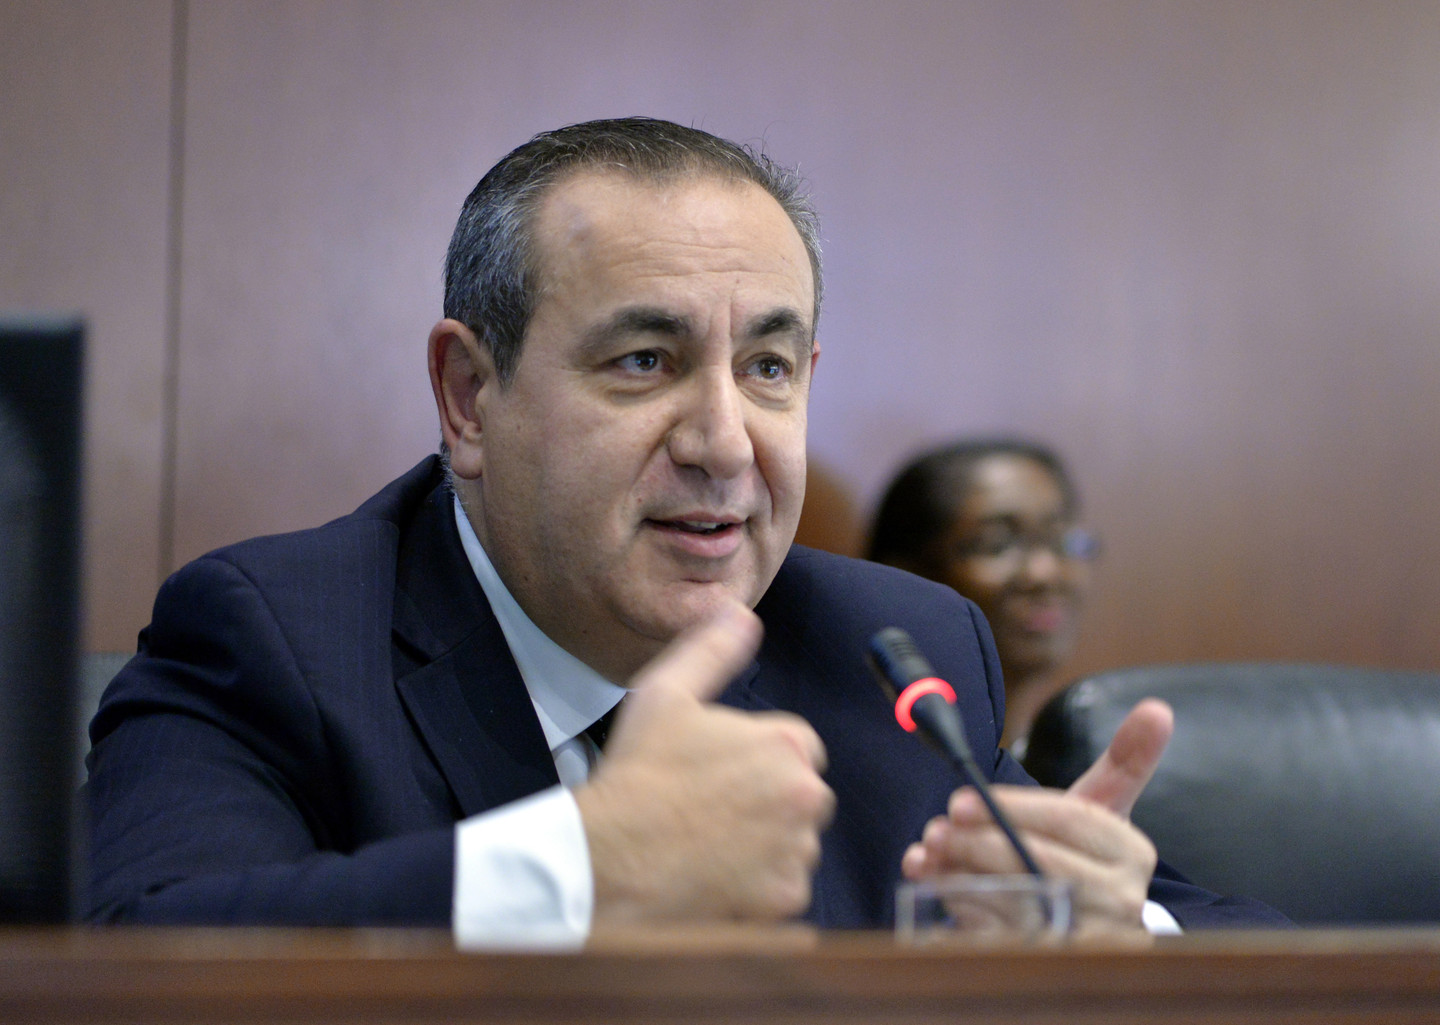 Starting to Unravel the Mystery of Joseph Mifsud